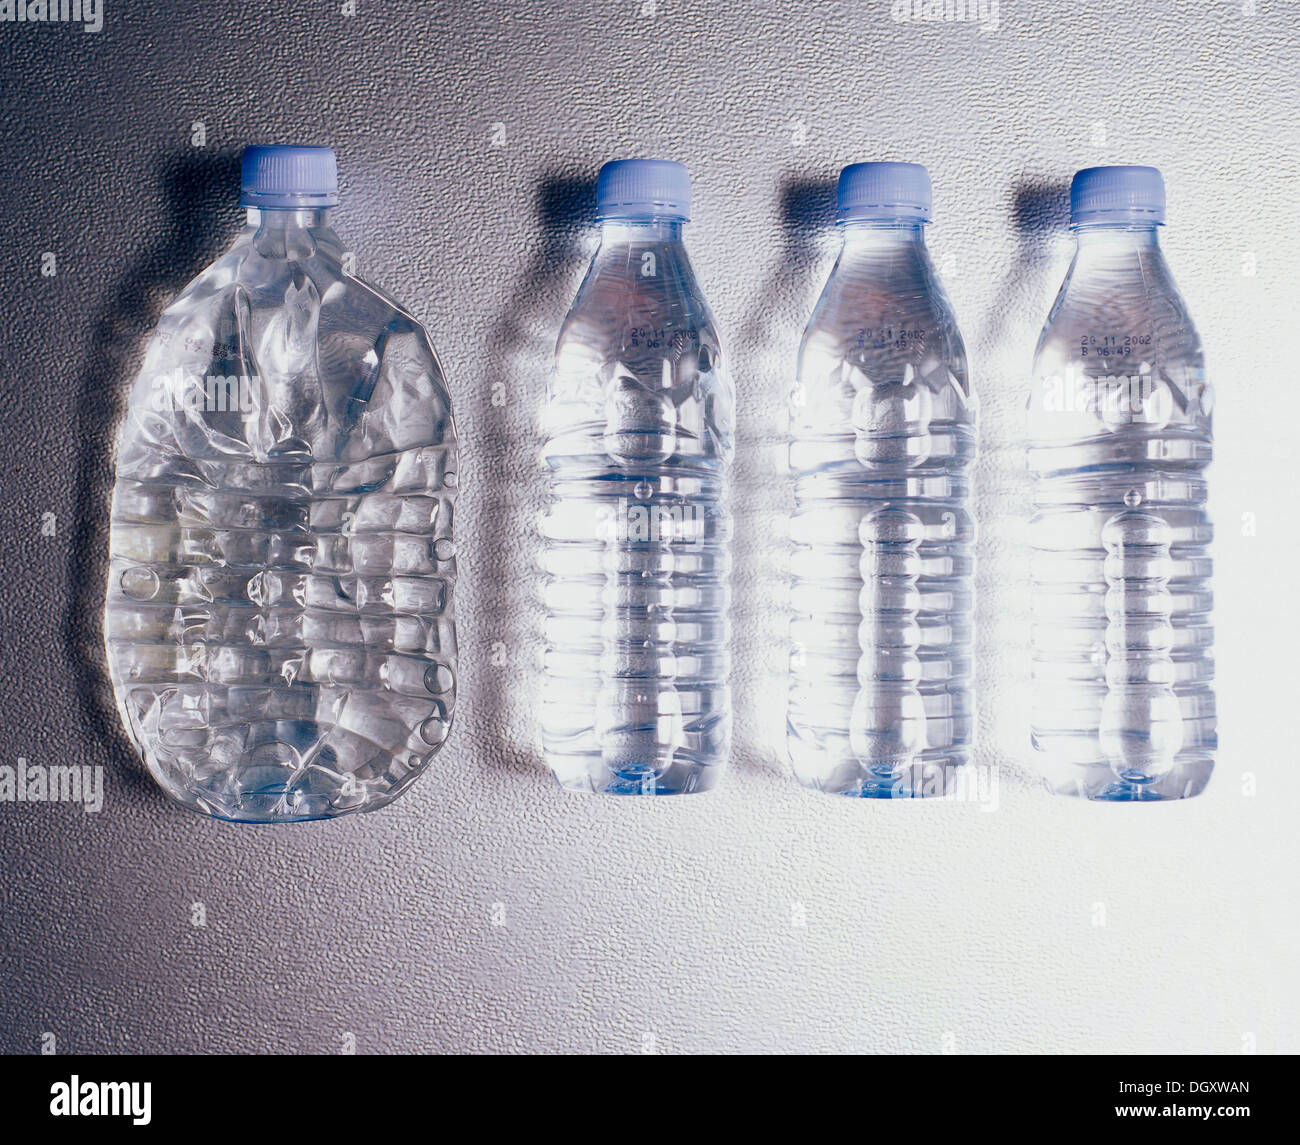 Row of plastic bottles, one flattened by being driven over - Stock Image